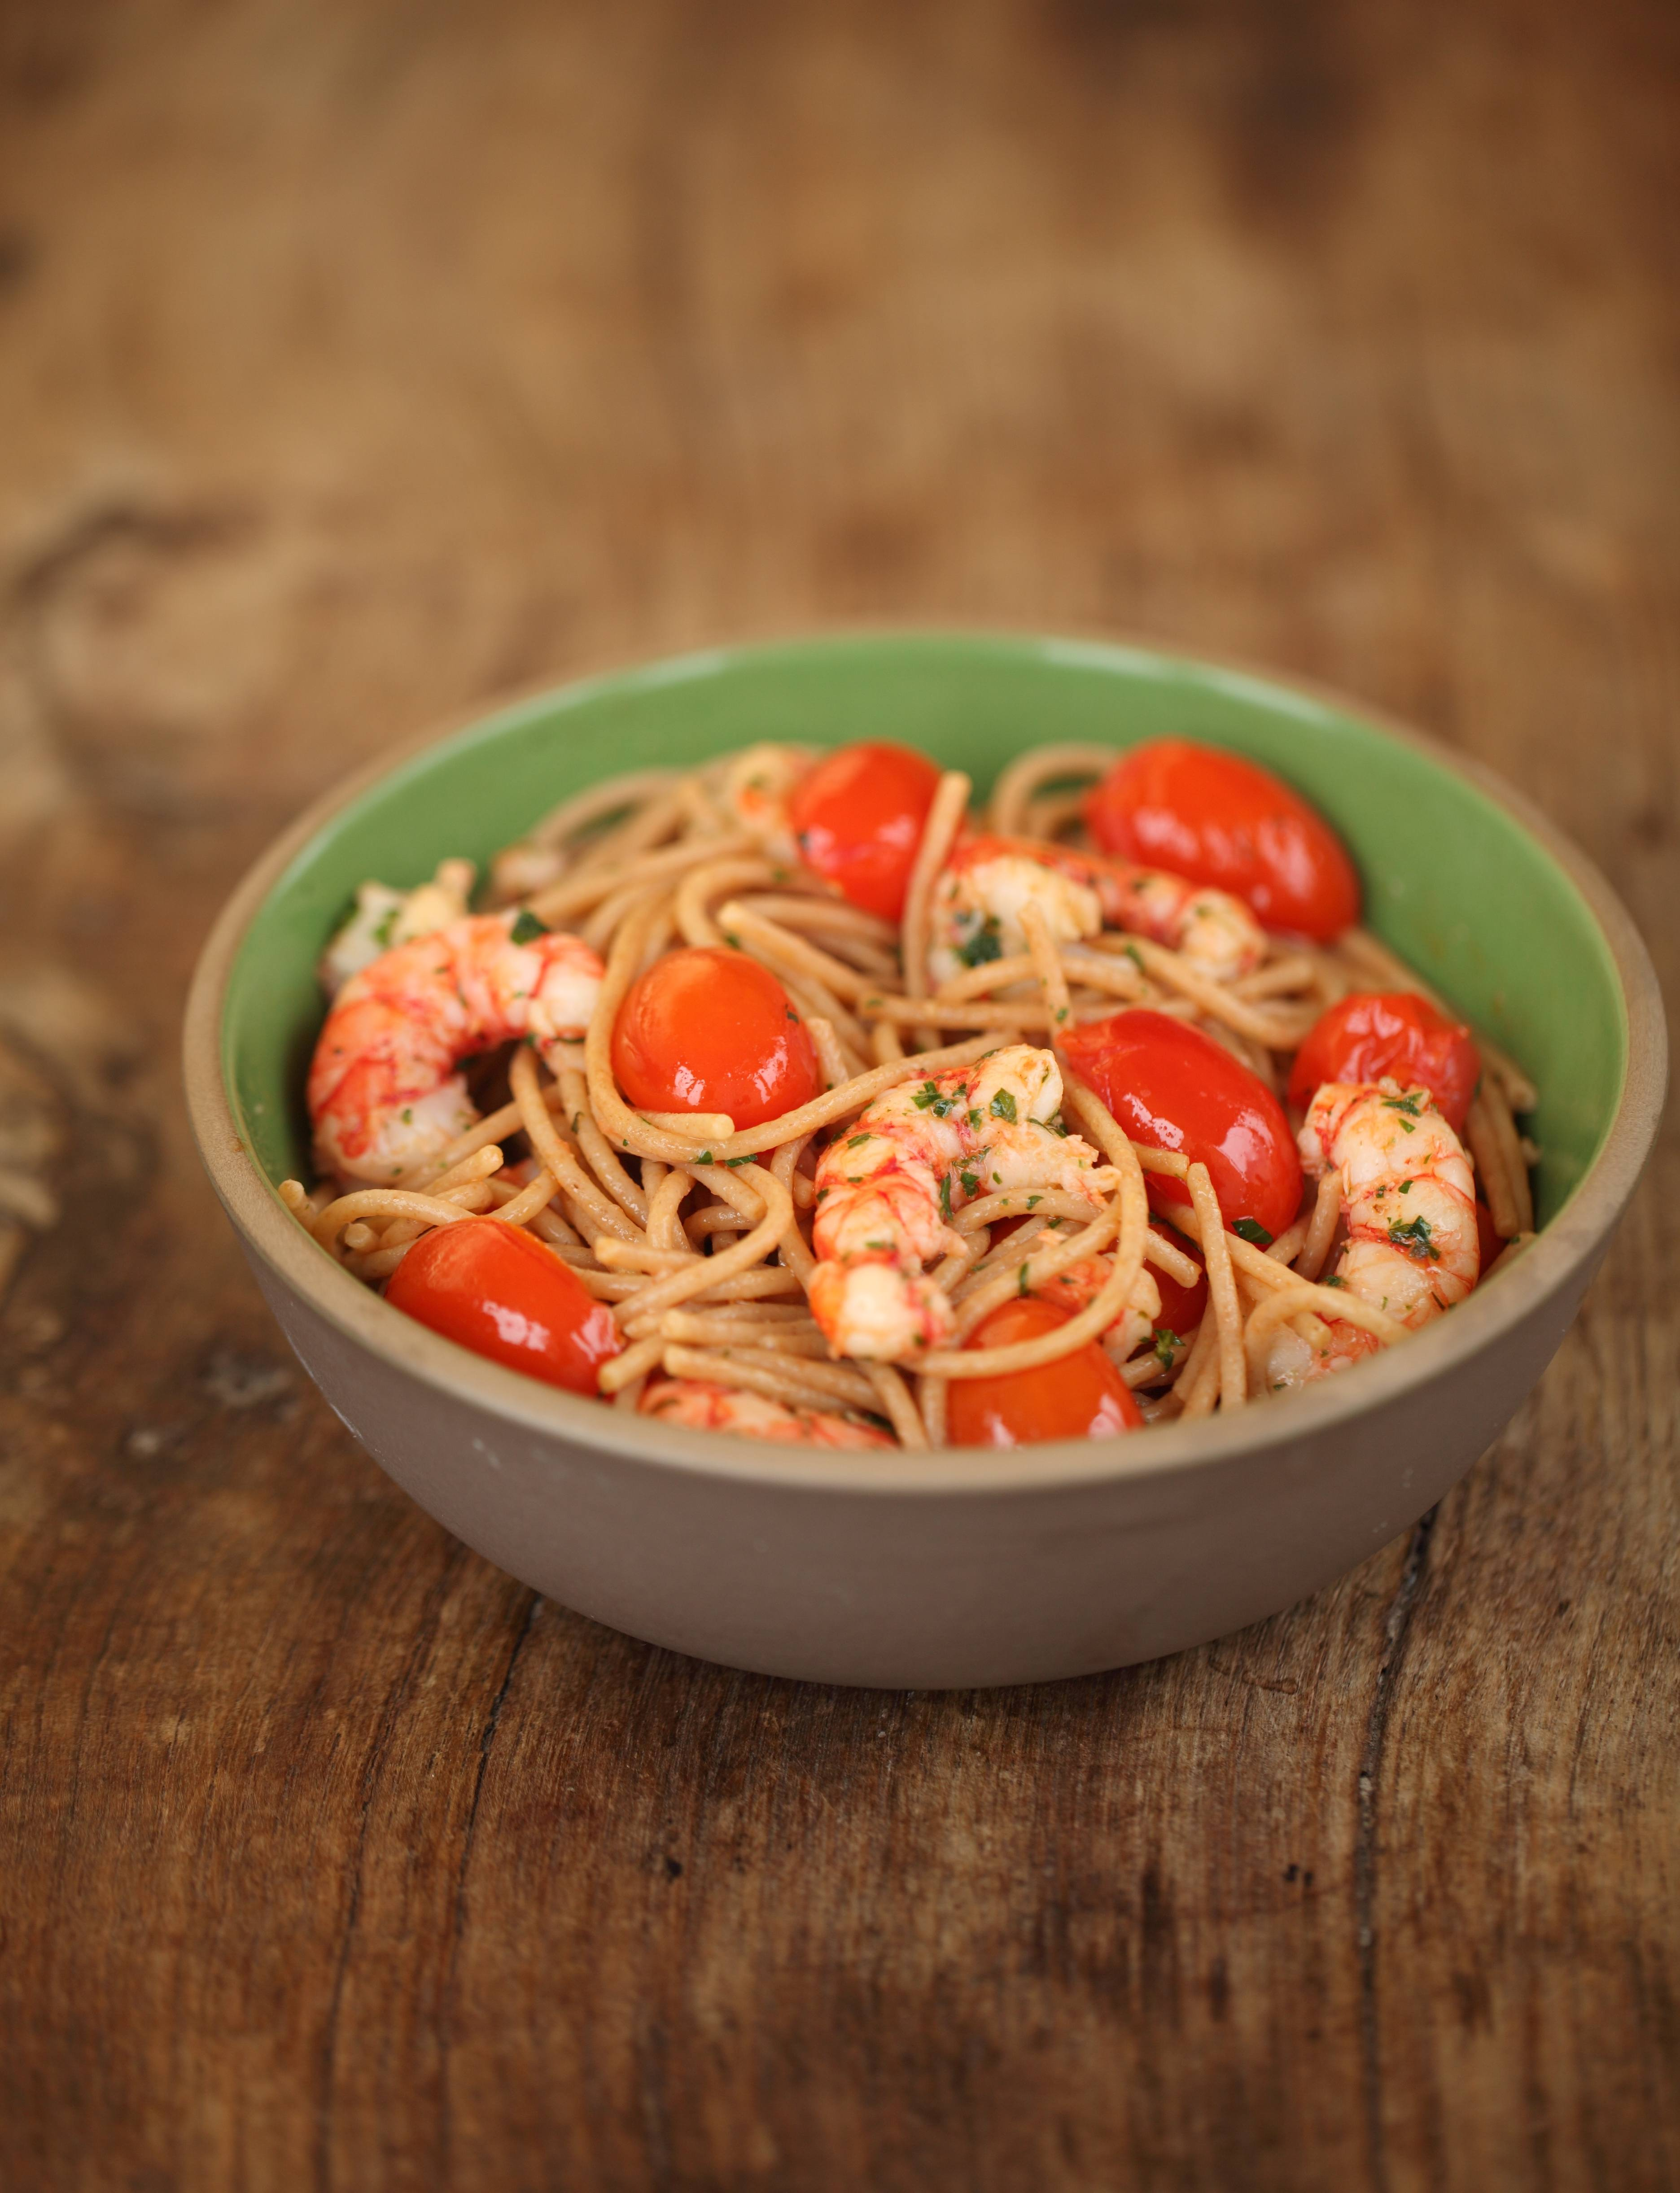 Pasta Cooked Italian-style with Cherry Tomatoes | Jovial Foods, Inc.